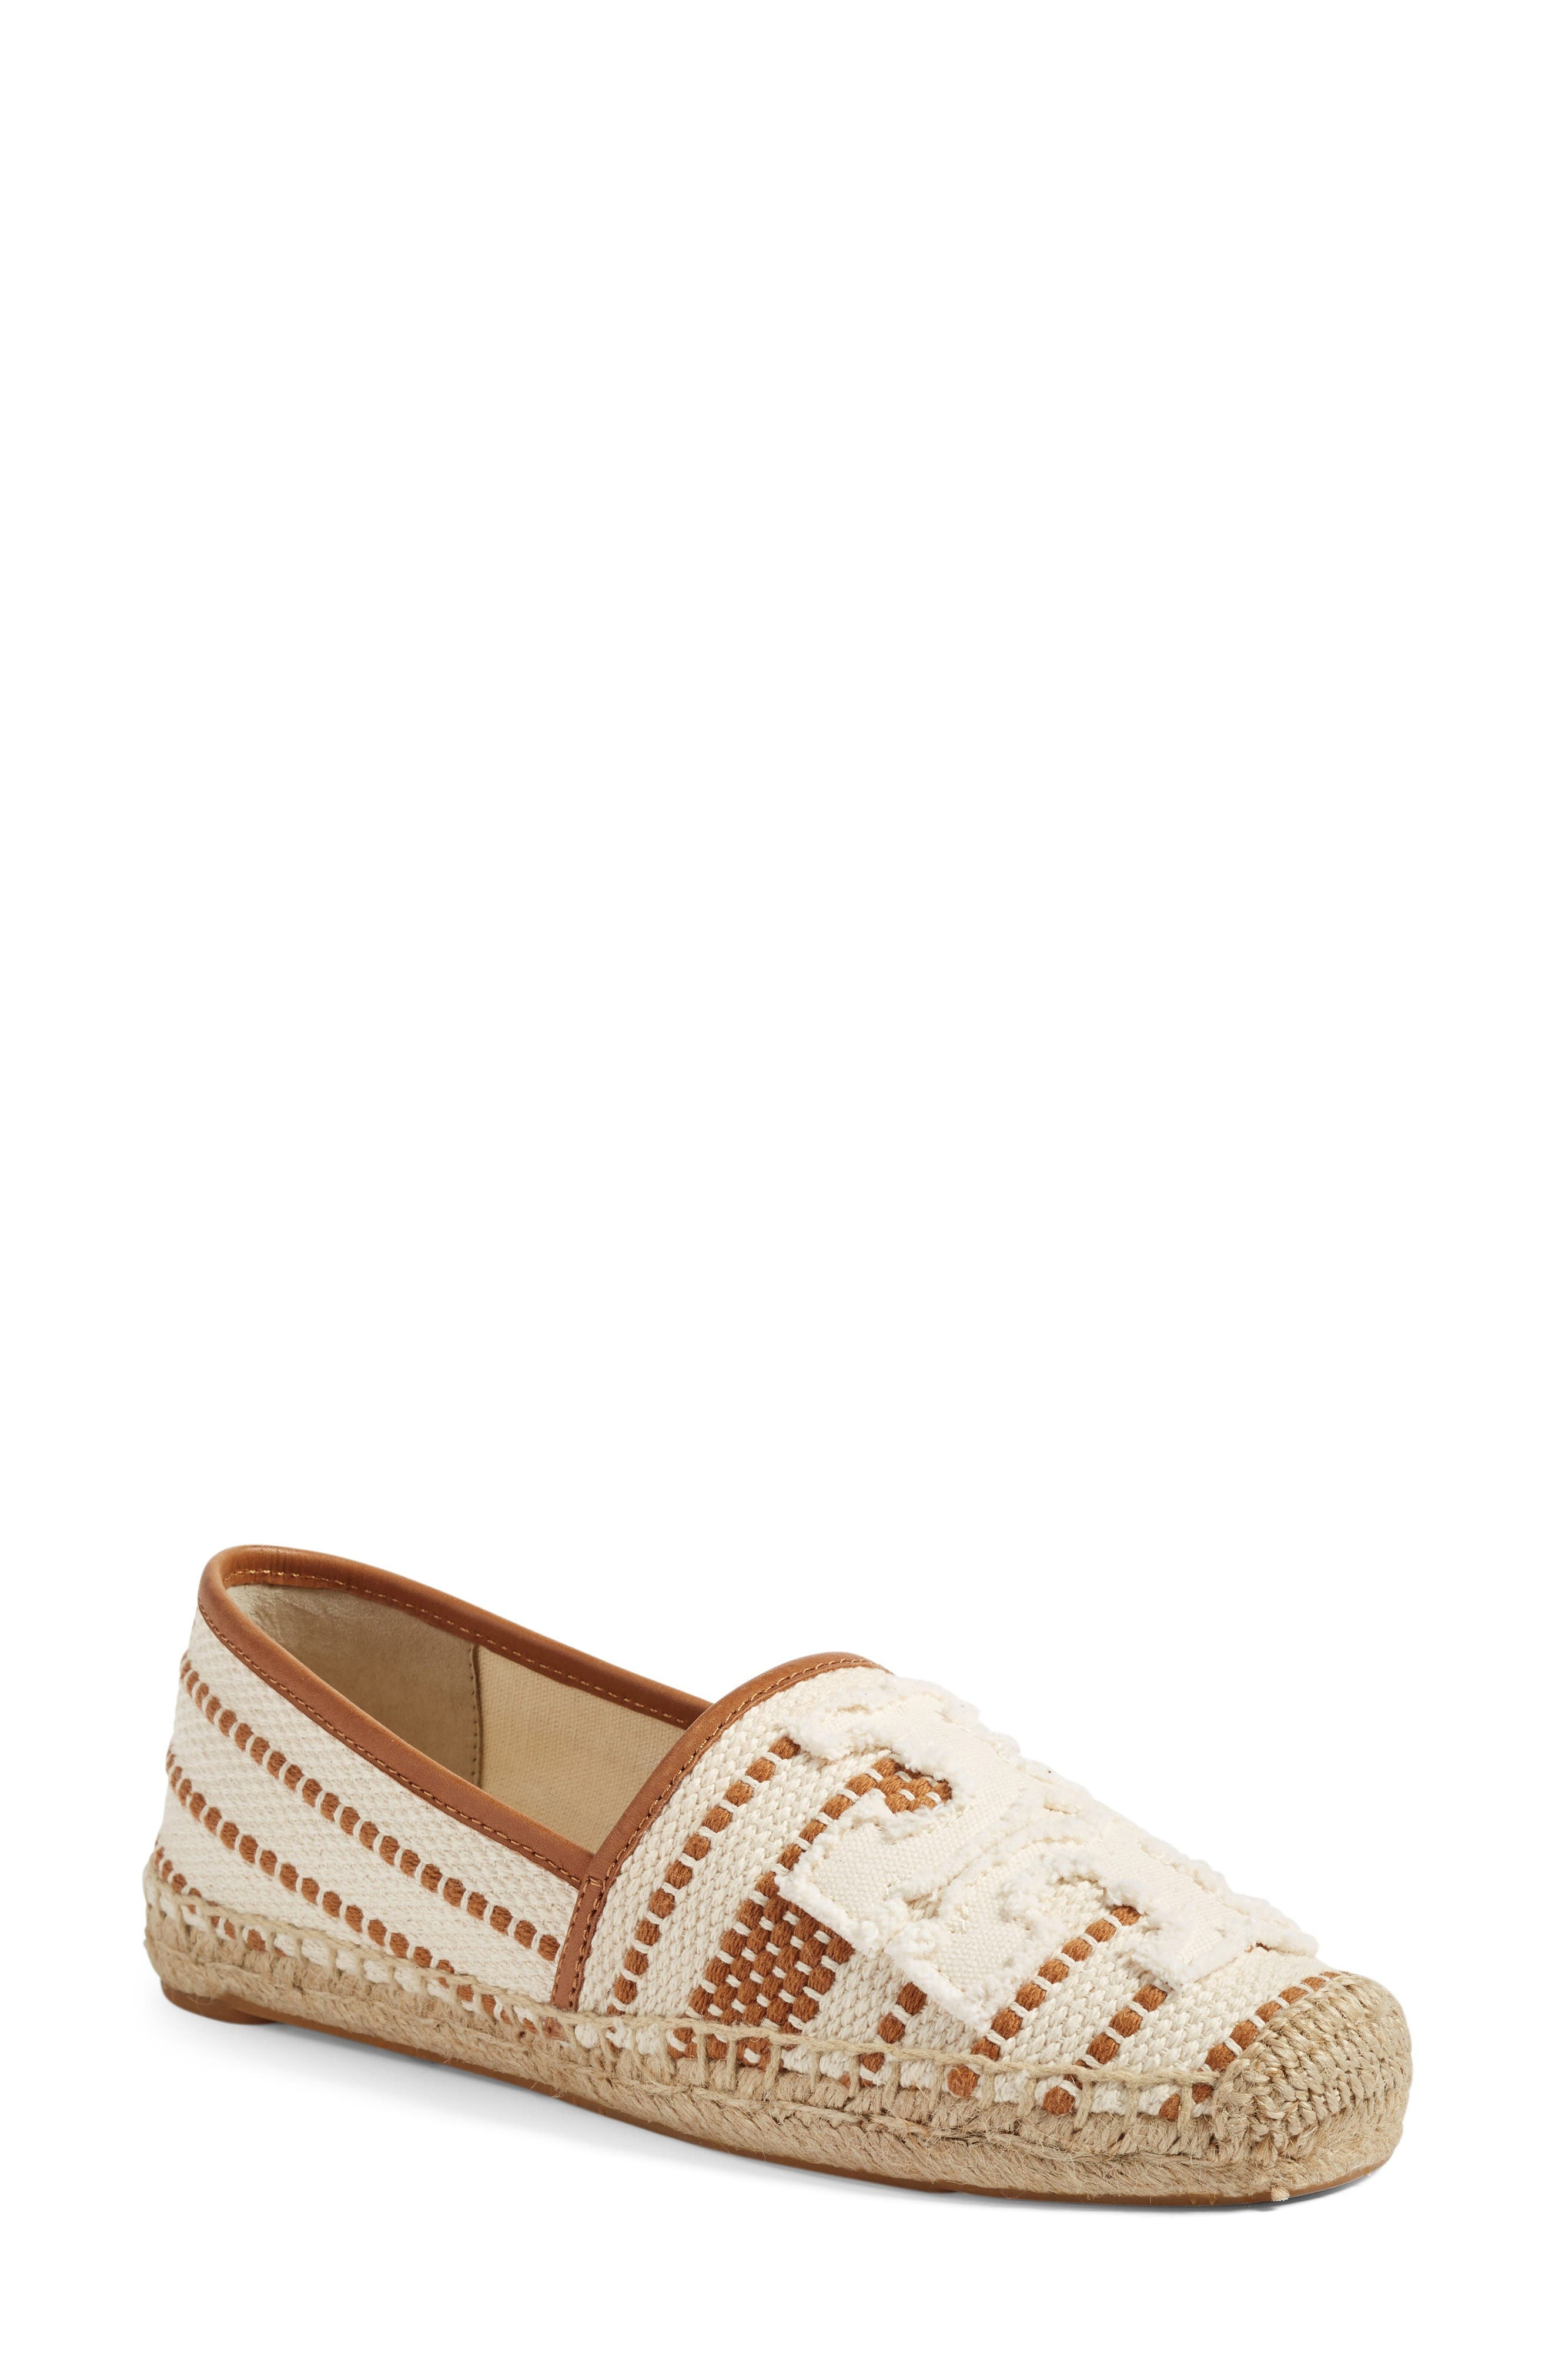 Alternate Image 1 Selected - Tory Burch Shaw Espadrille (Women)